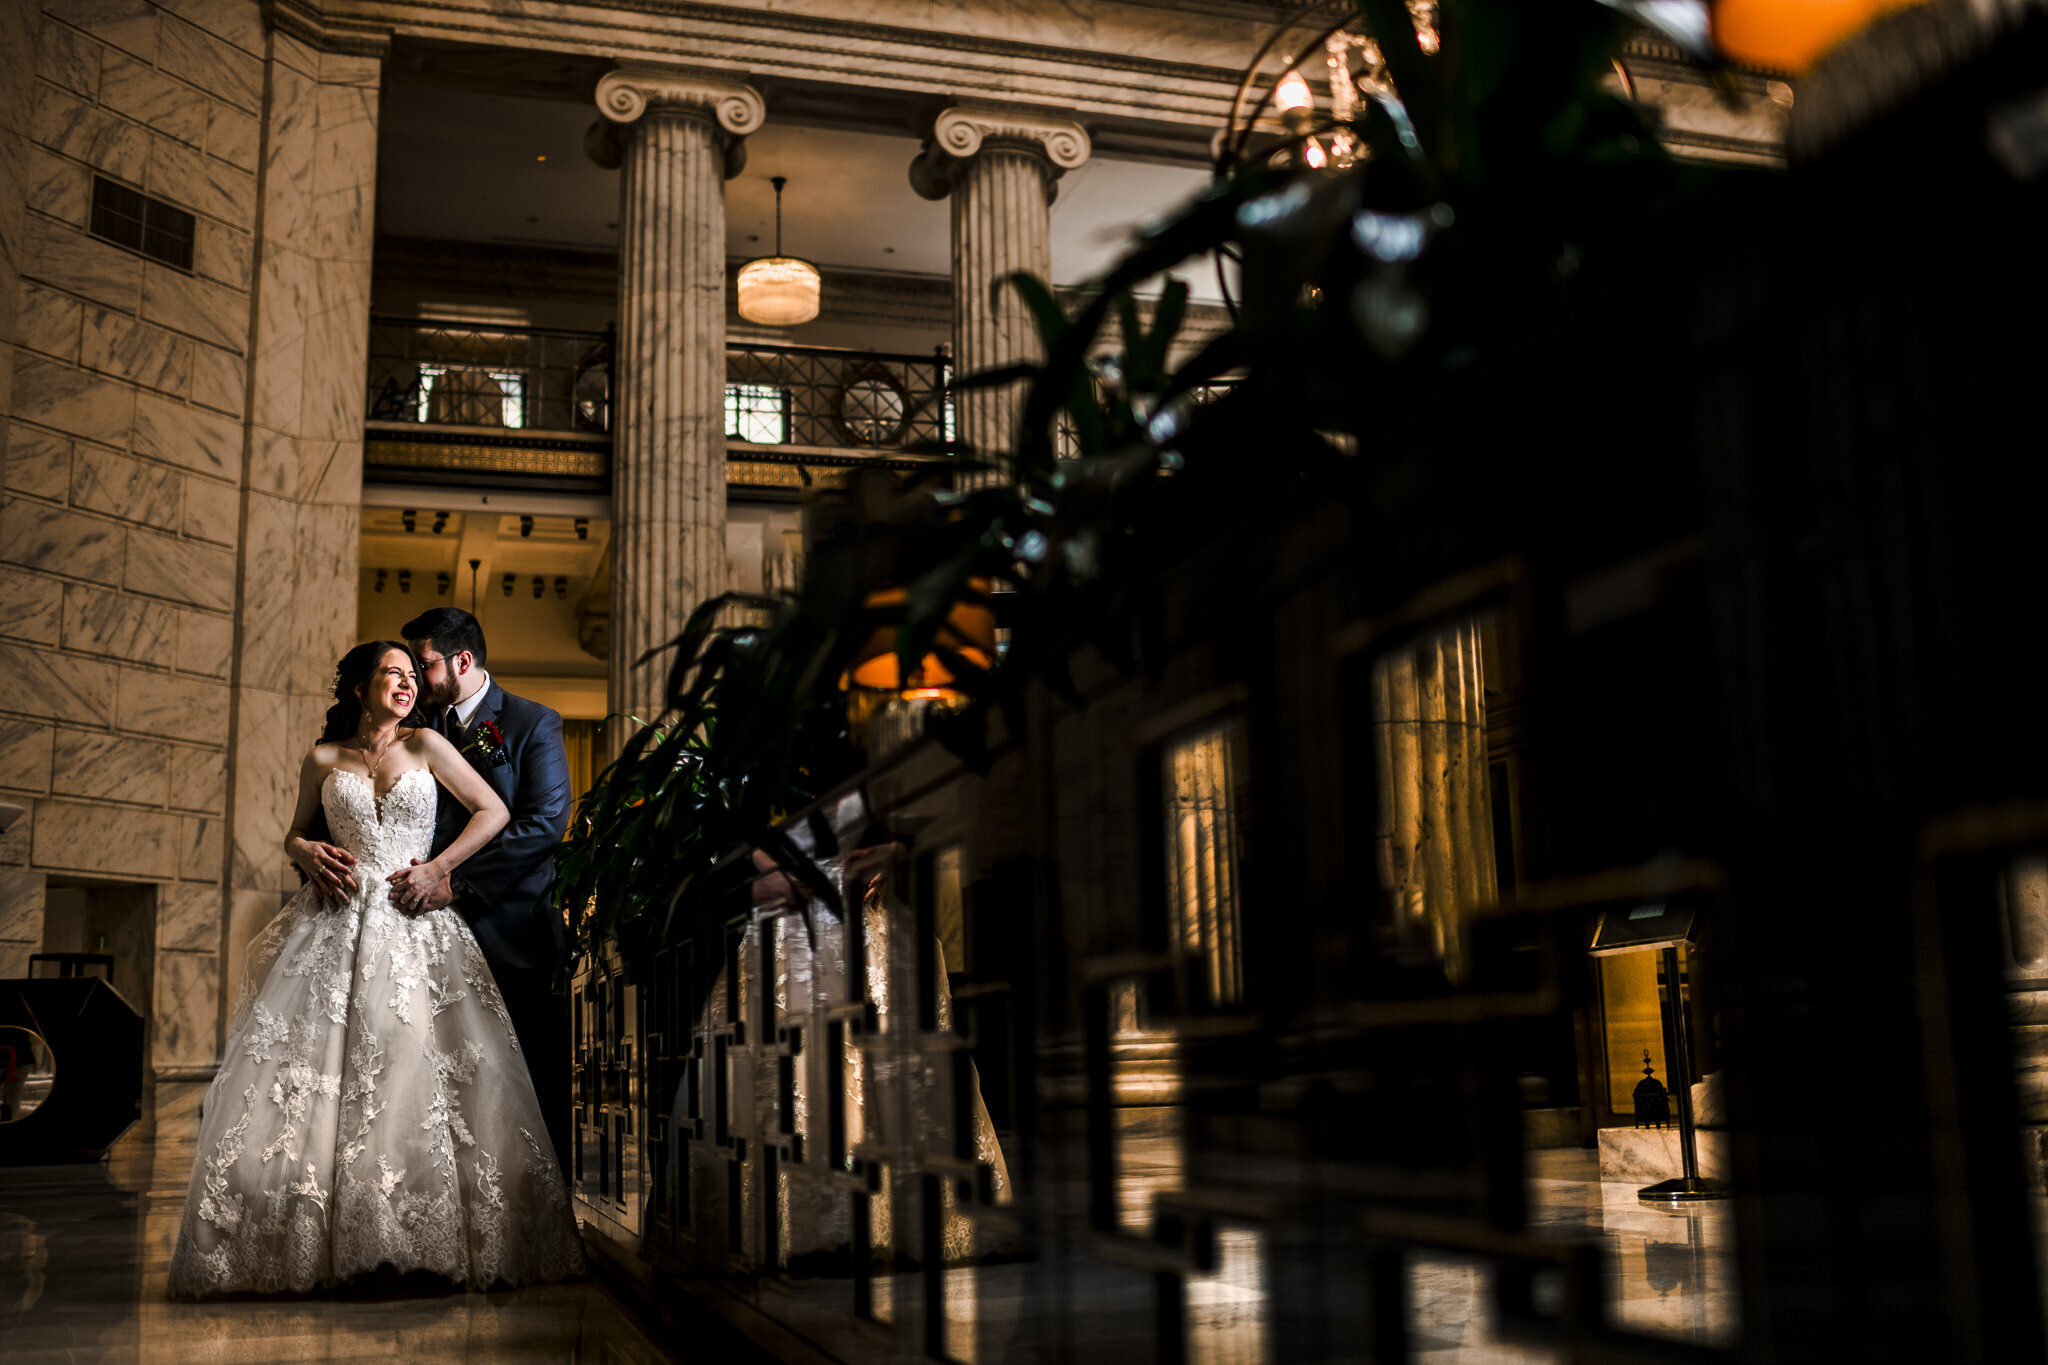 Brozenia-Ritz-Carlton-Philadelphia-Wedding-Photographer-20.JPG